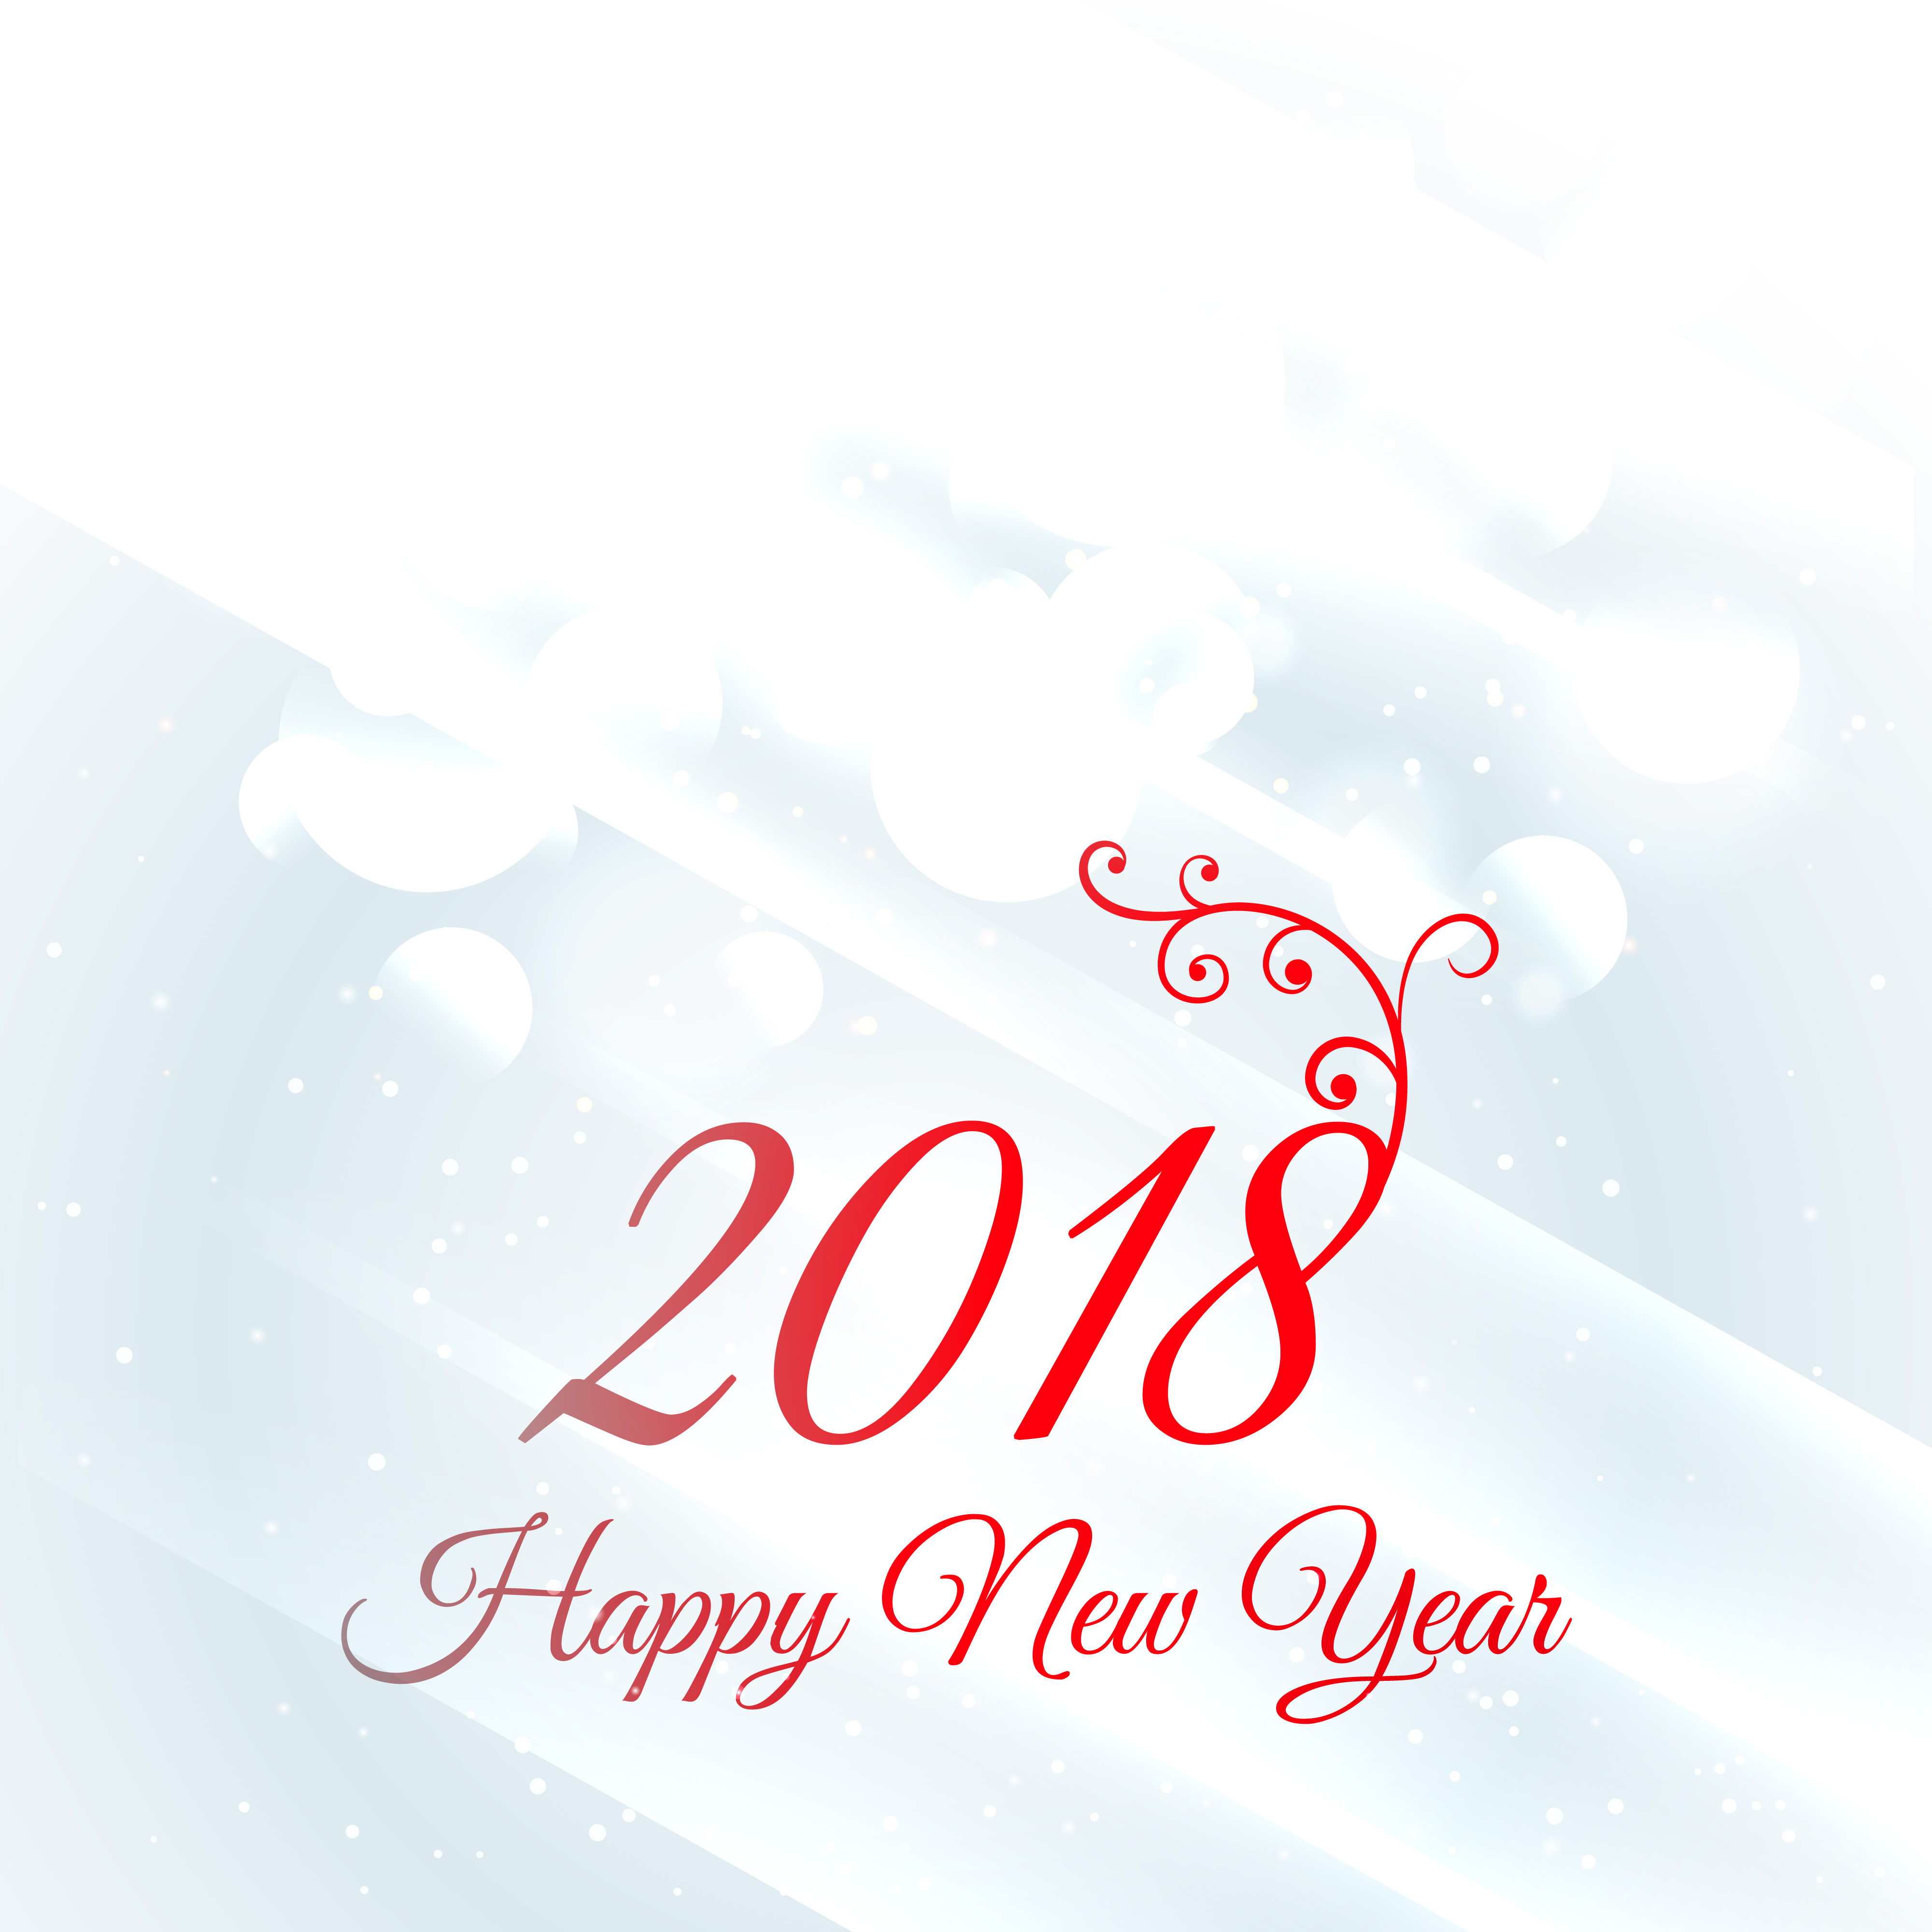 2018 happy new year greeting card design background download free vector art stock graphics images